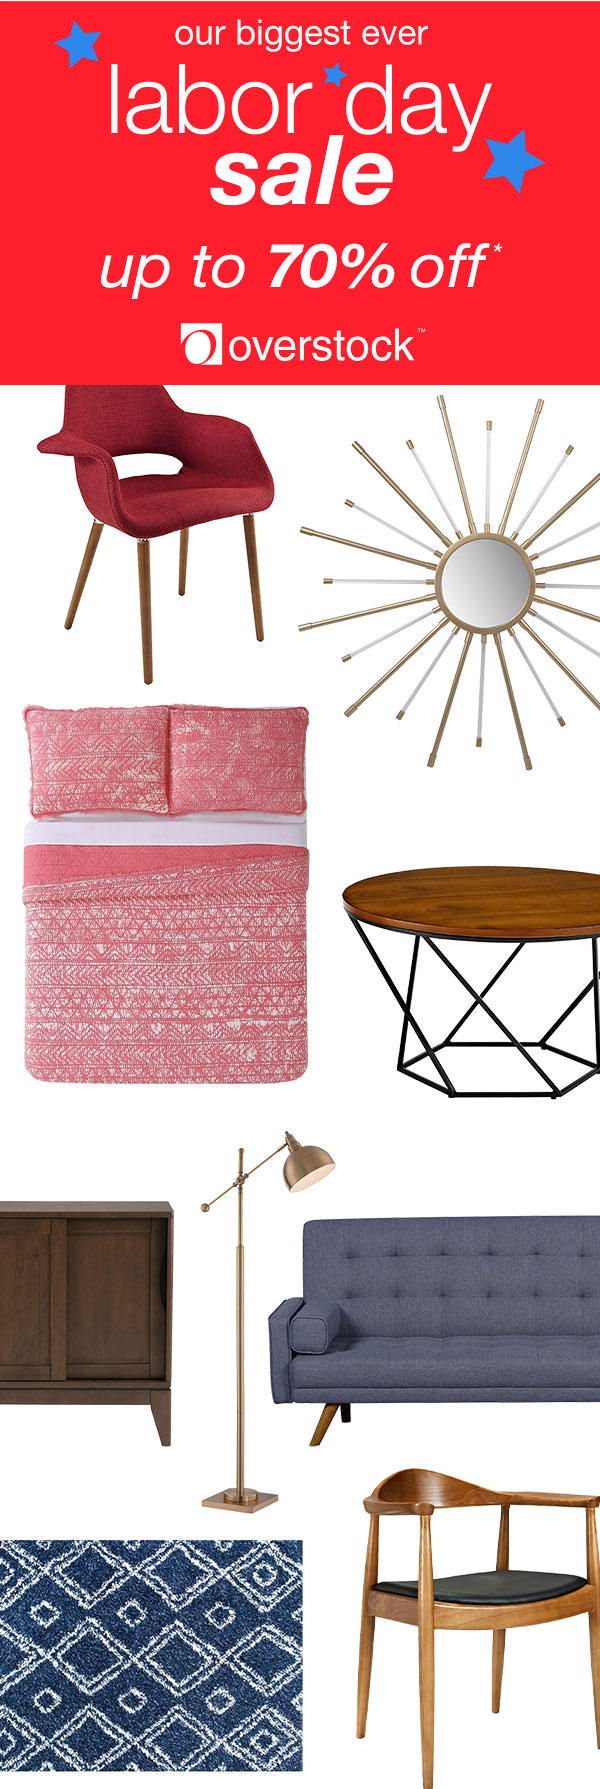 6 chic living room ideas to try at home paid display pins old decoraci n de unas. Black Bedroom Furniture Sets. Home Design Ideas